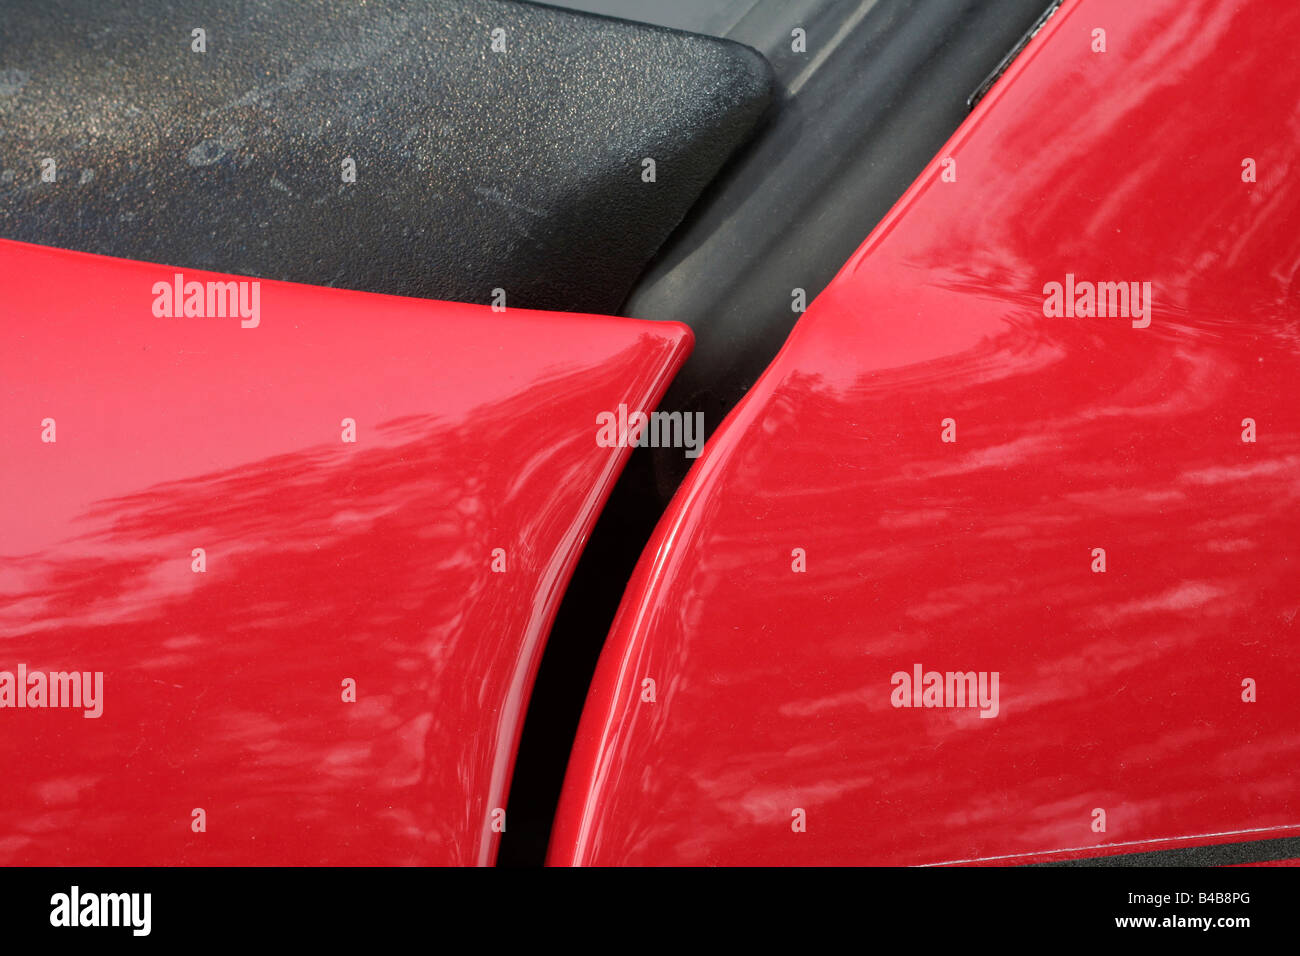 Car red SUV body detail - Stock Image